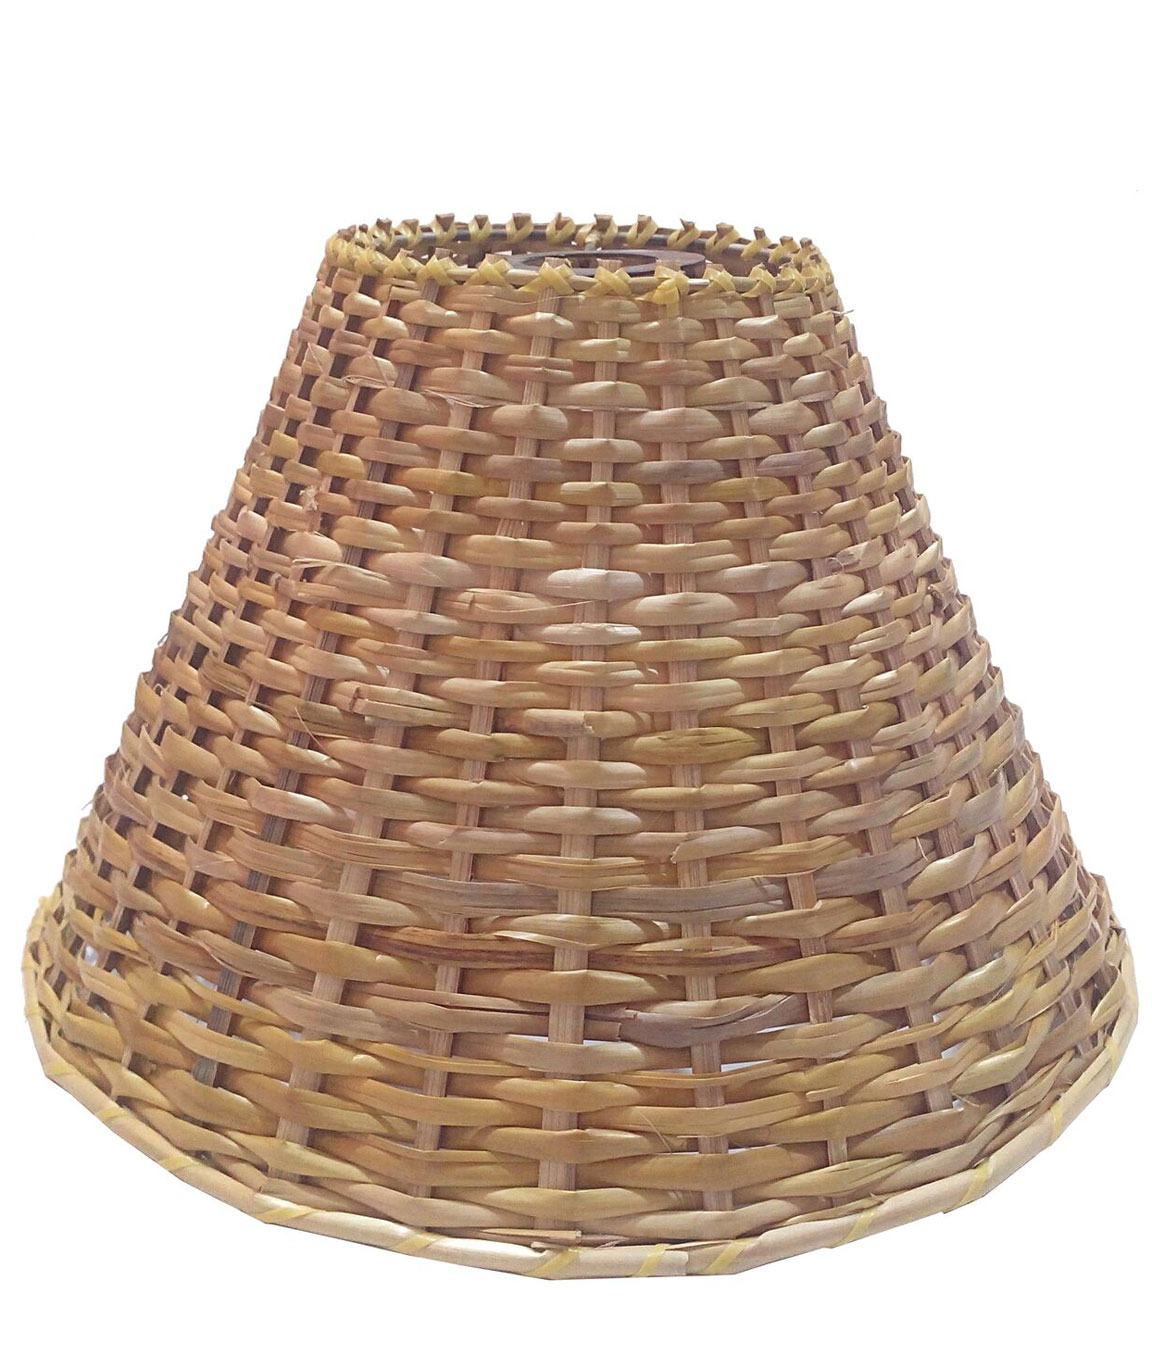 RDC 10 Inches Round Cane Hanging Pendant Lamp Shade